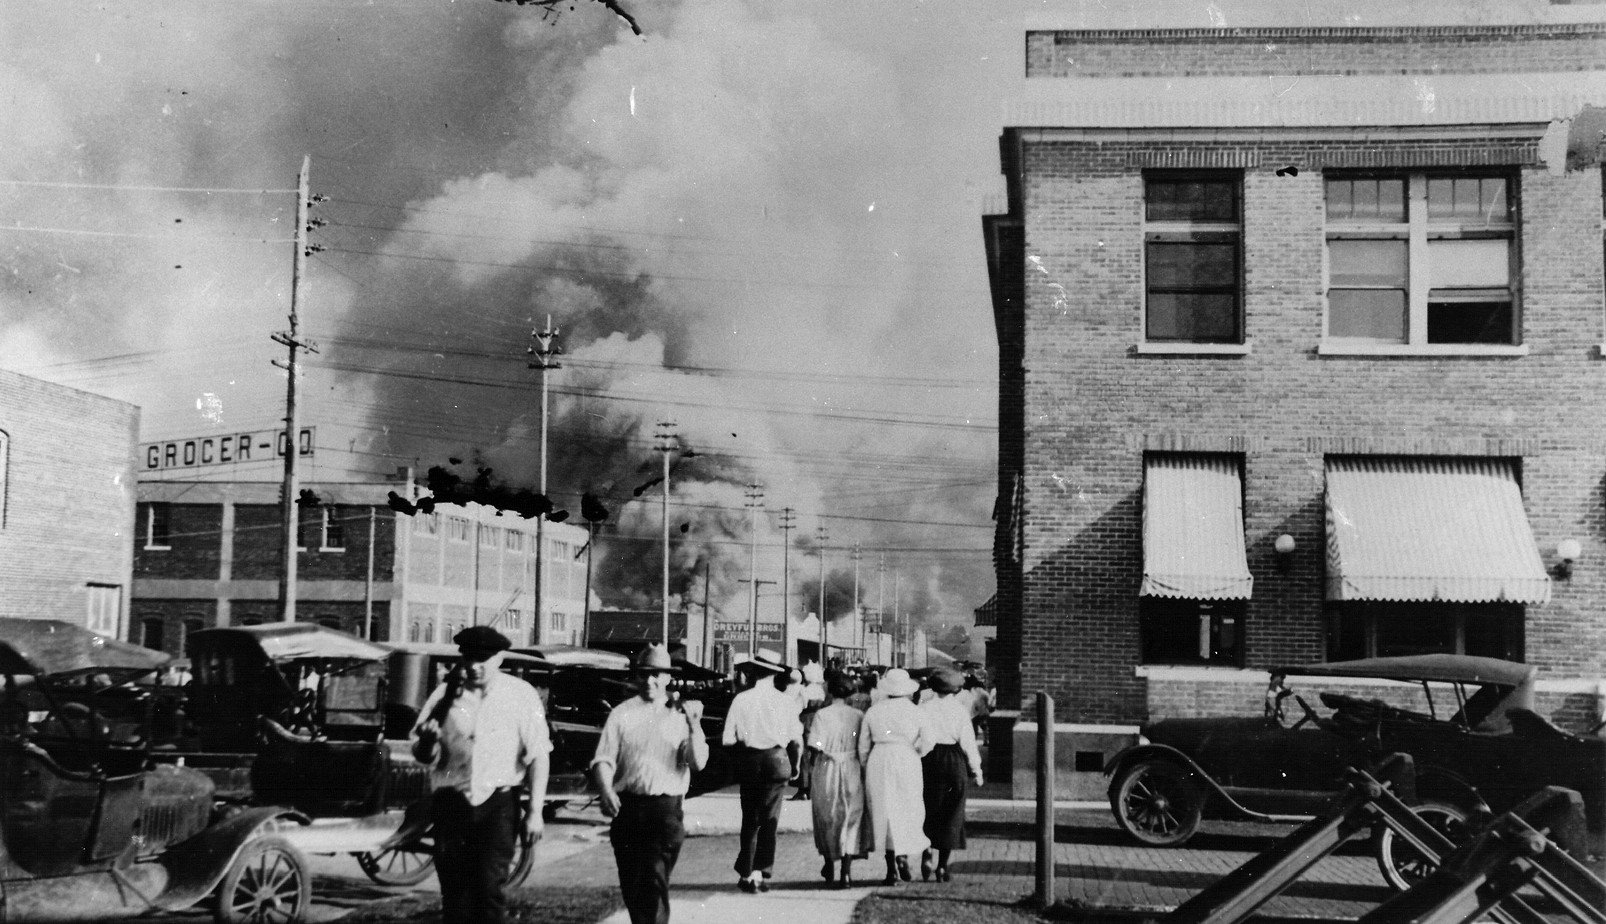 A street in Tulsa with smoke in the distance after the riot.